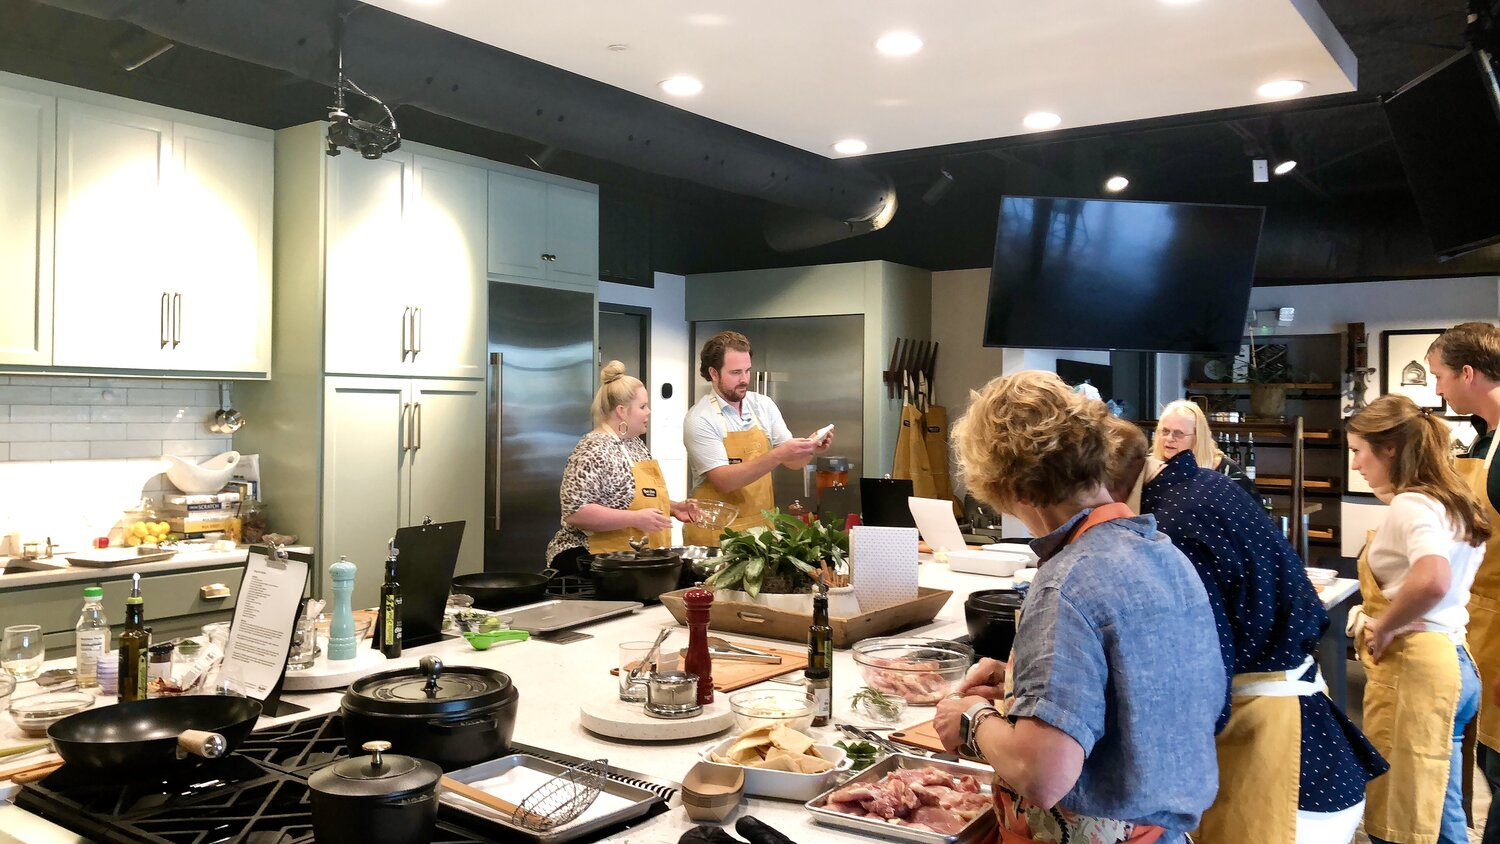 Blog — Kitchen Confidence With Lili